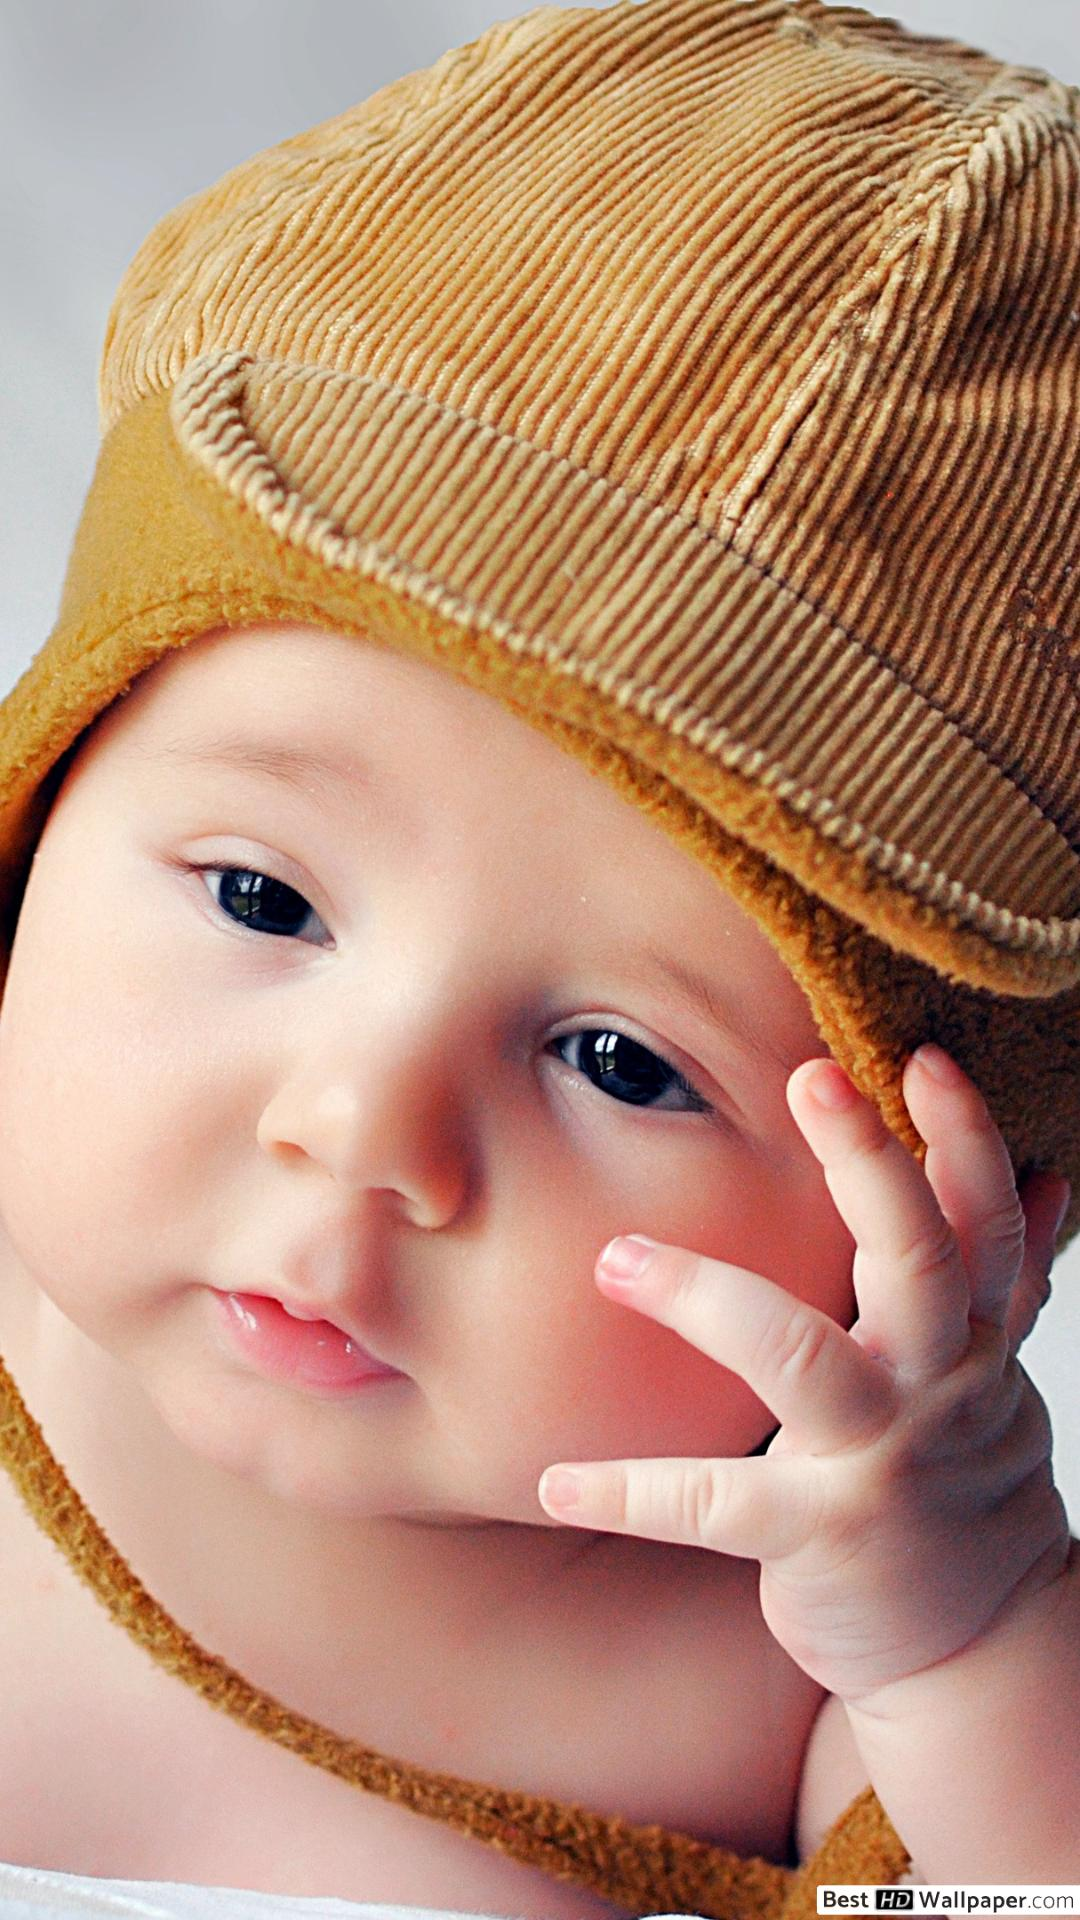 Cute Baby Hd Wallpaper Posted By Zoey Anderson